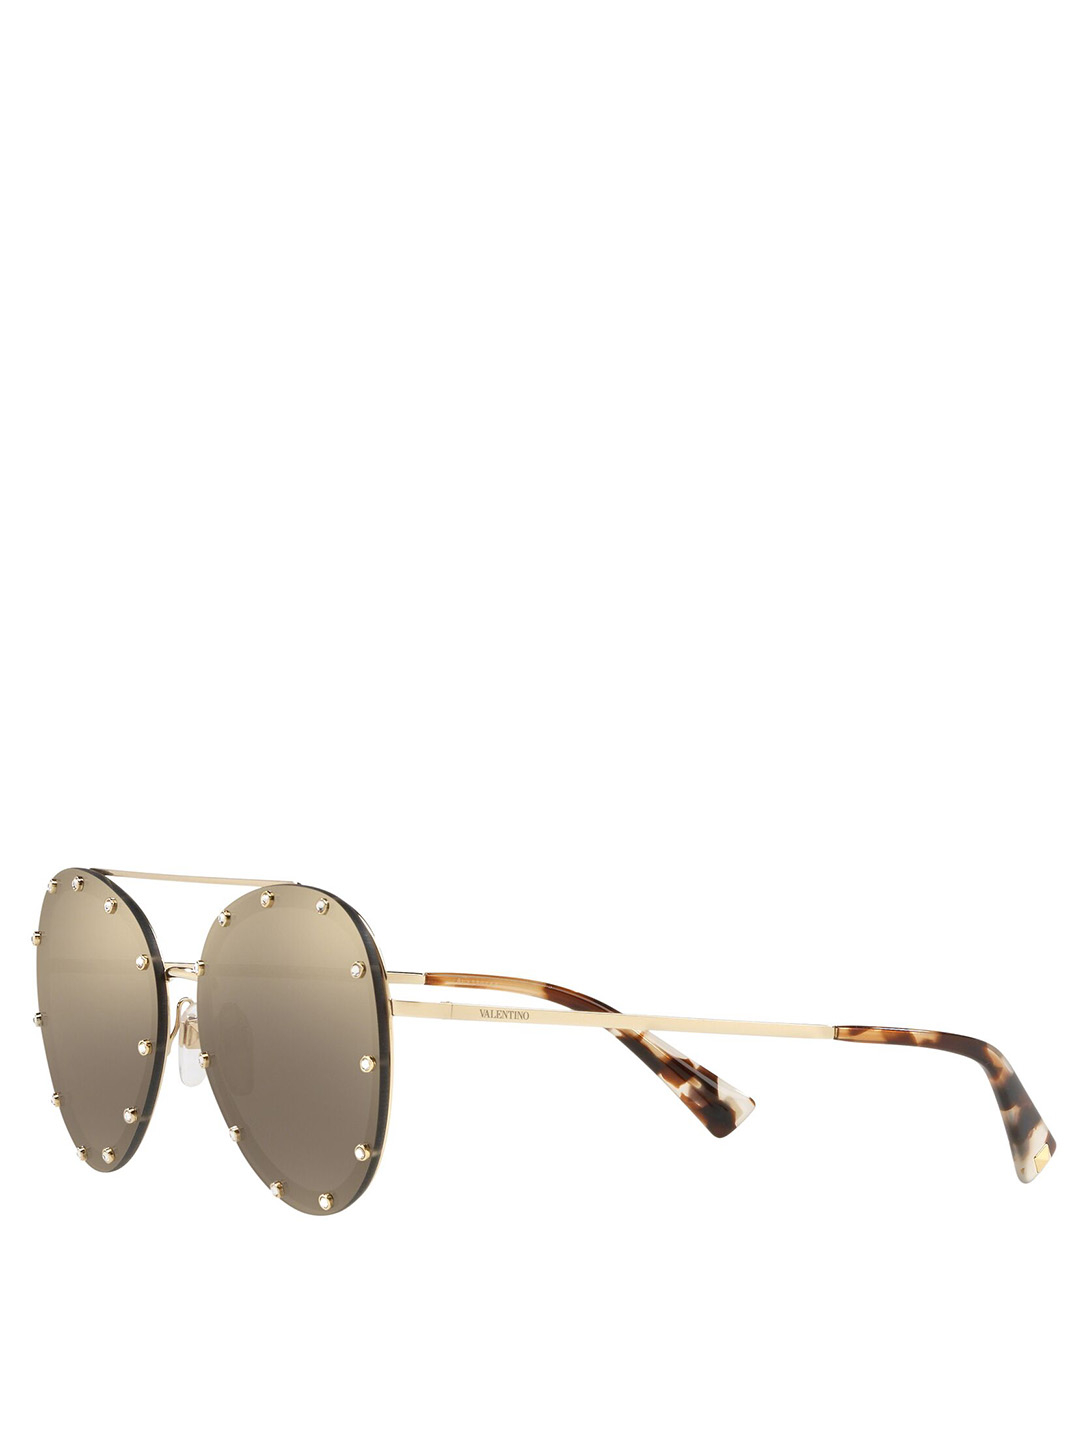 VALENTINO Aviator Sunglasses With Crystals Women's Metallic